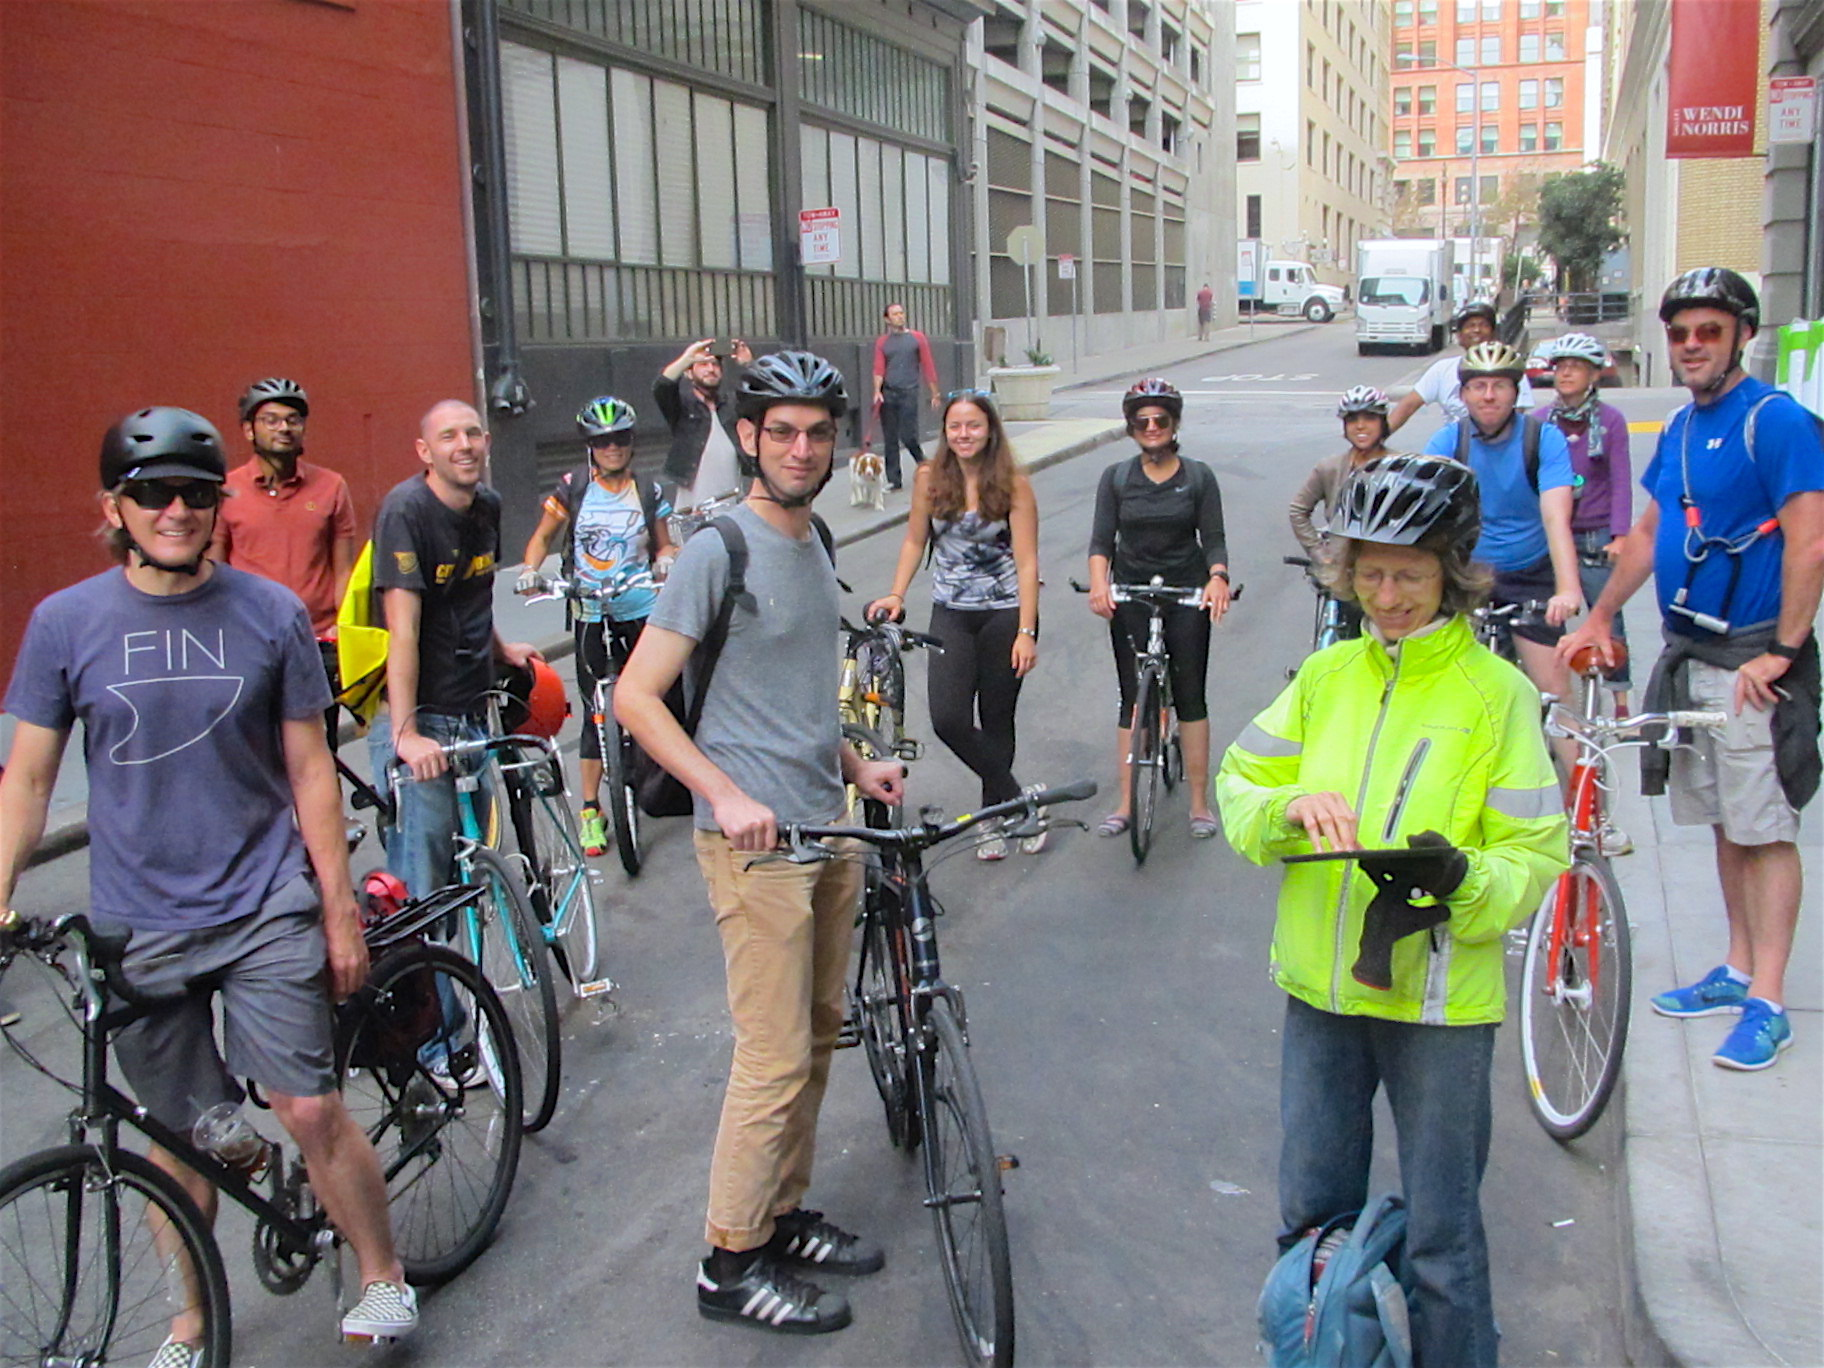 A group of smiling bicycle riders on an urban side street in San Francisco.